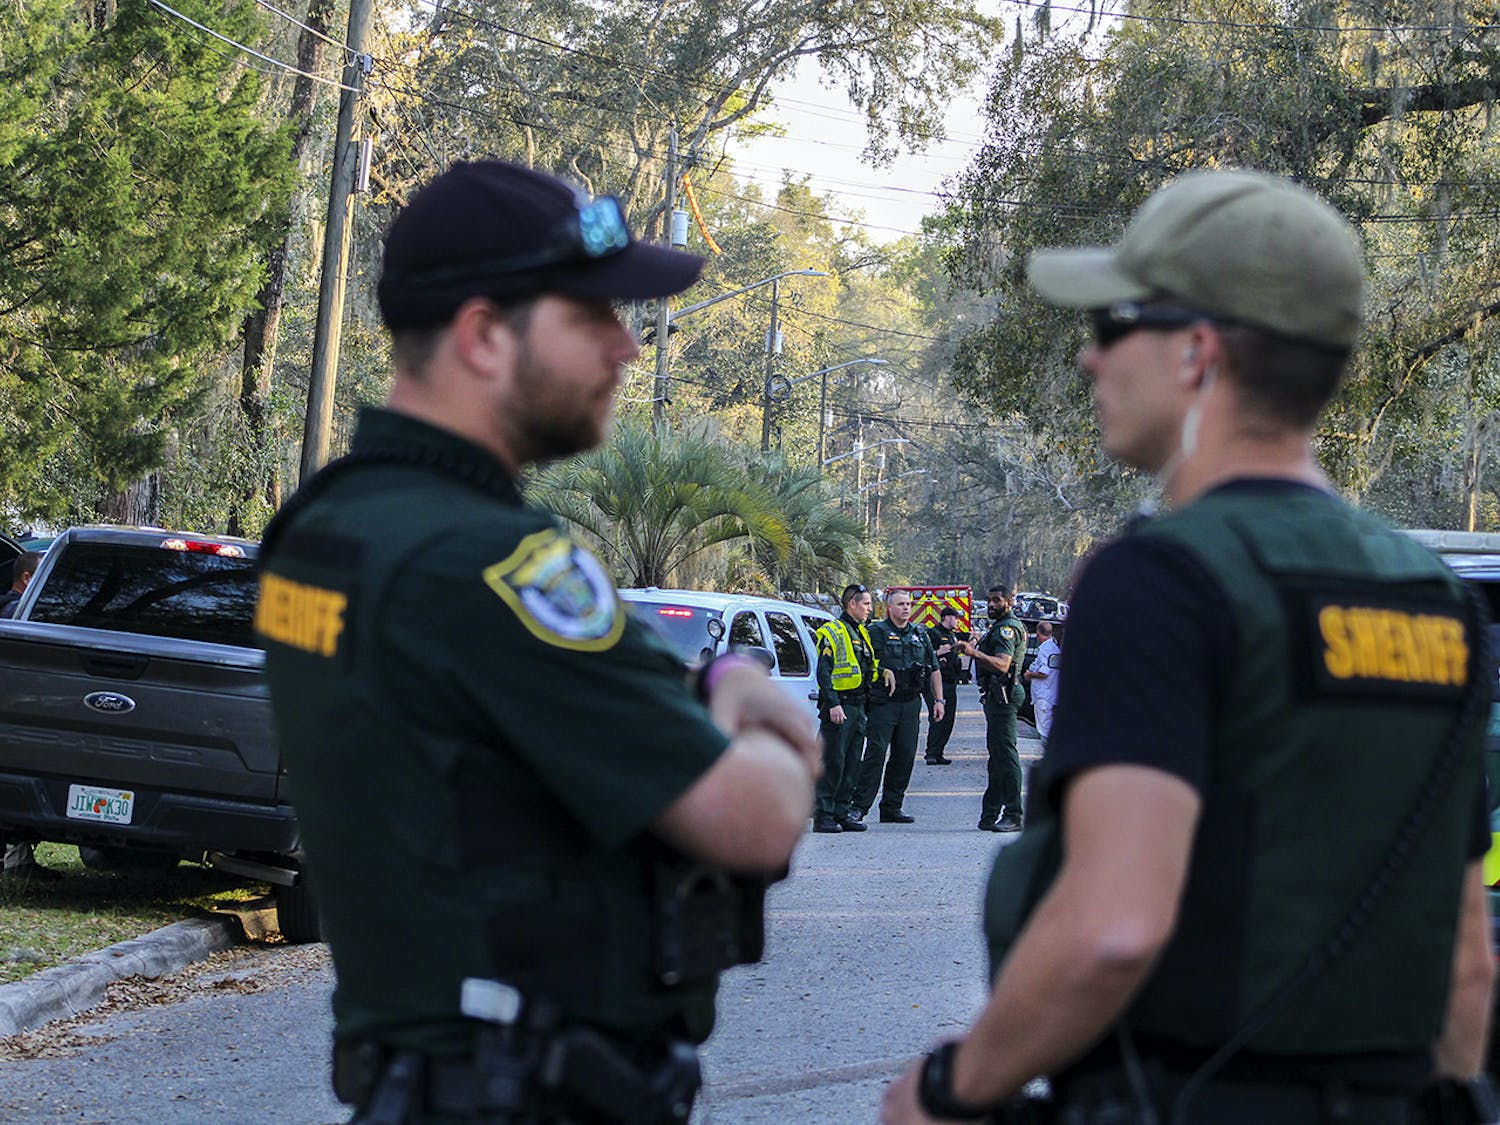 Law enforcement from the Alachua County Sheriff's Office stand near crime scene tape on Southeast 46th Terrace on Friday, March 5, 2021, where a person died after a shootout between ACSO deputies and the individual.